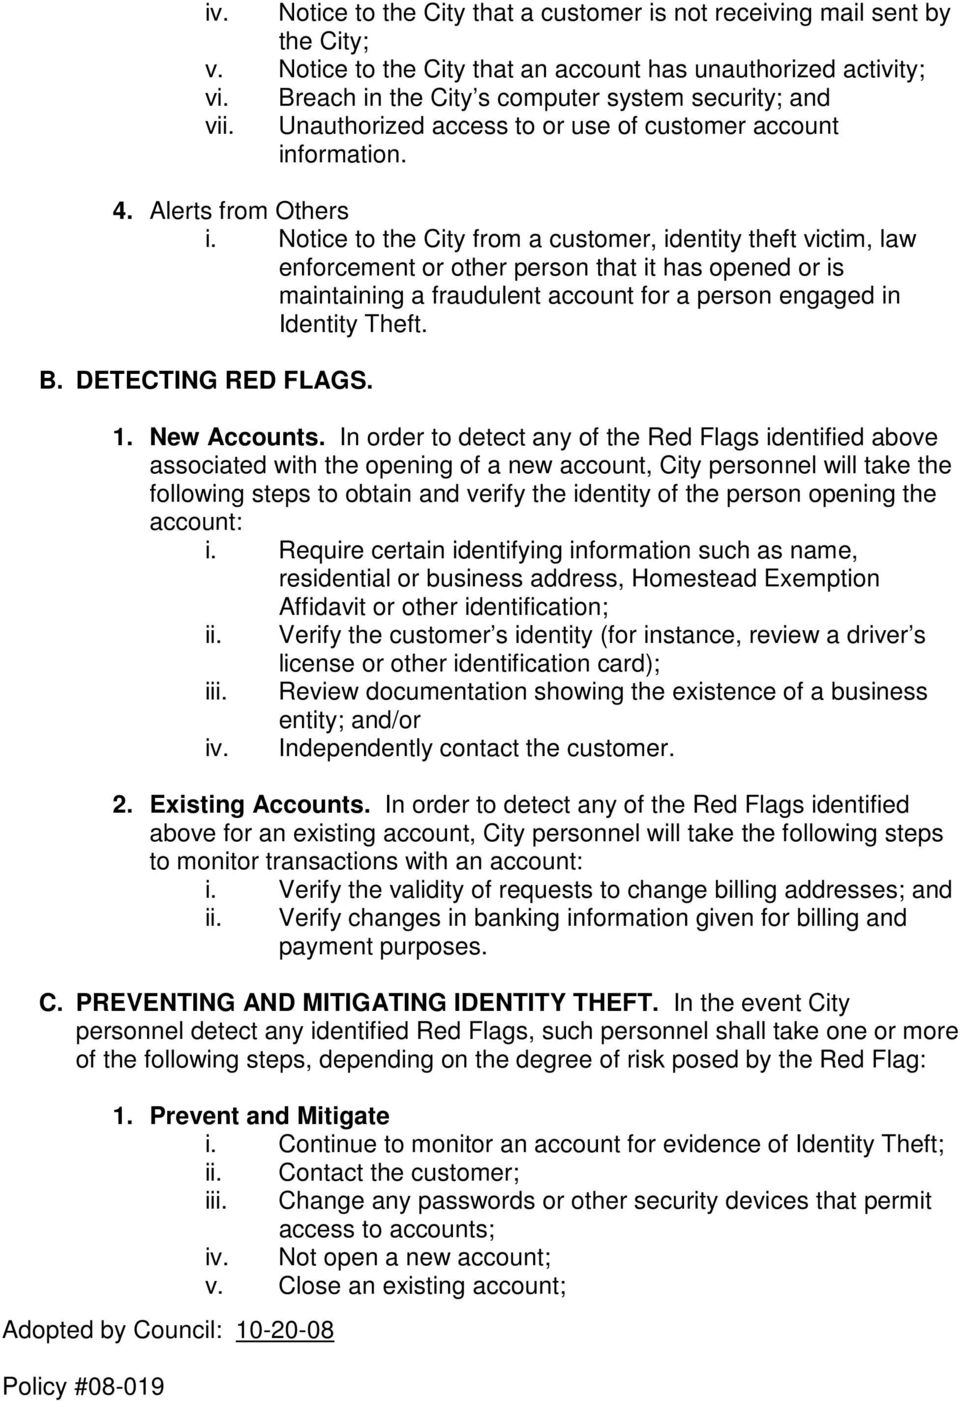 Notice to the City from a customer, identity theft victim, law enforcement or other person that it has opened or is maintaining a fraudulent account for a person engaged in Identity Theft. B.